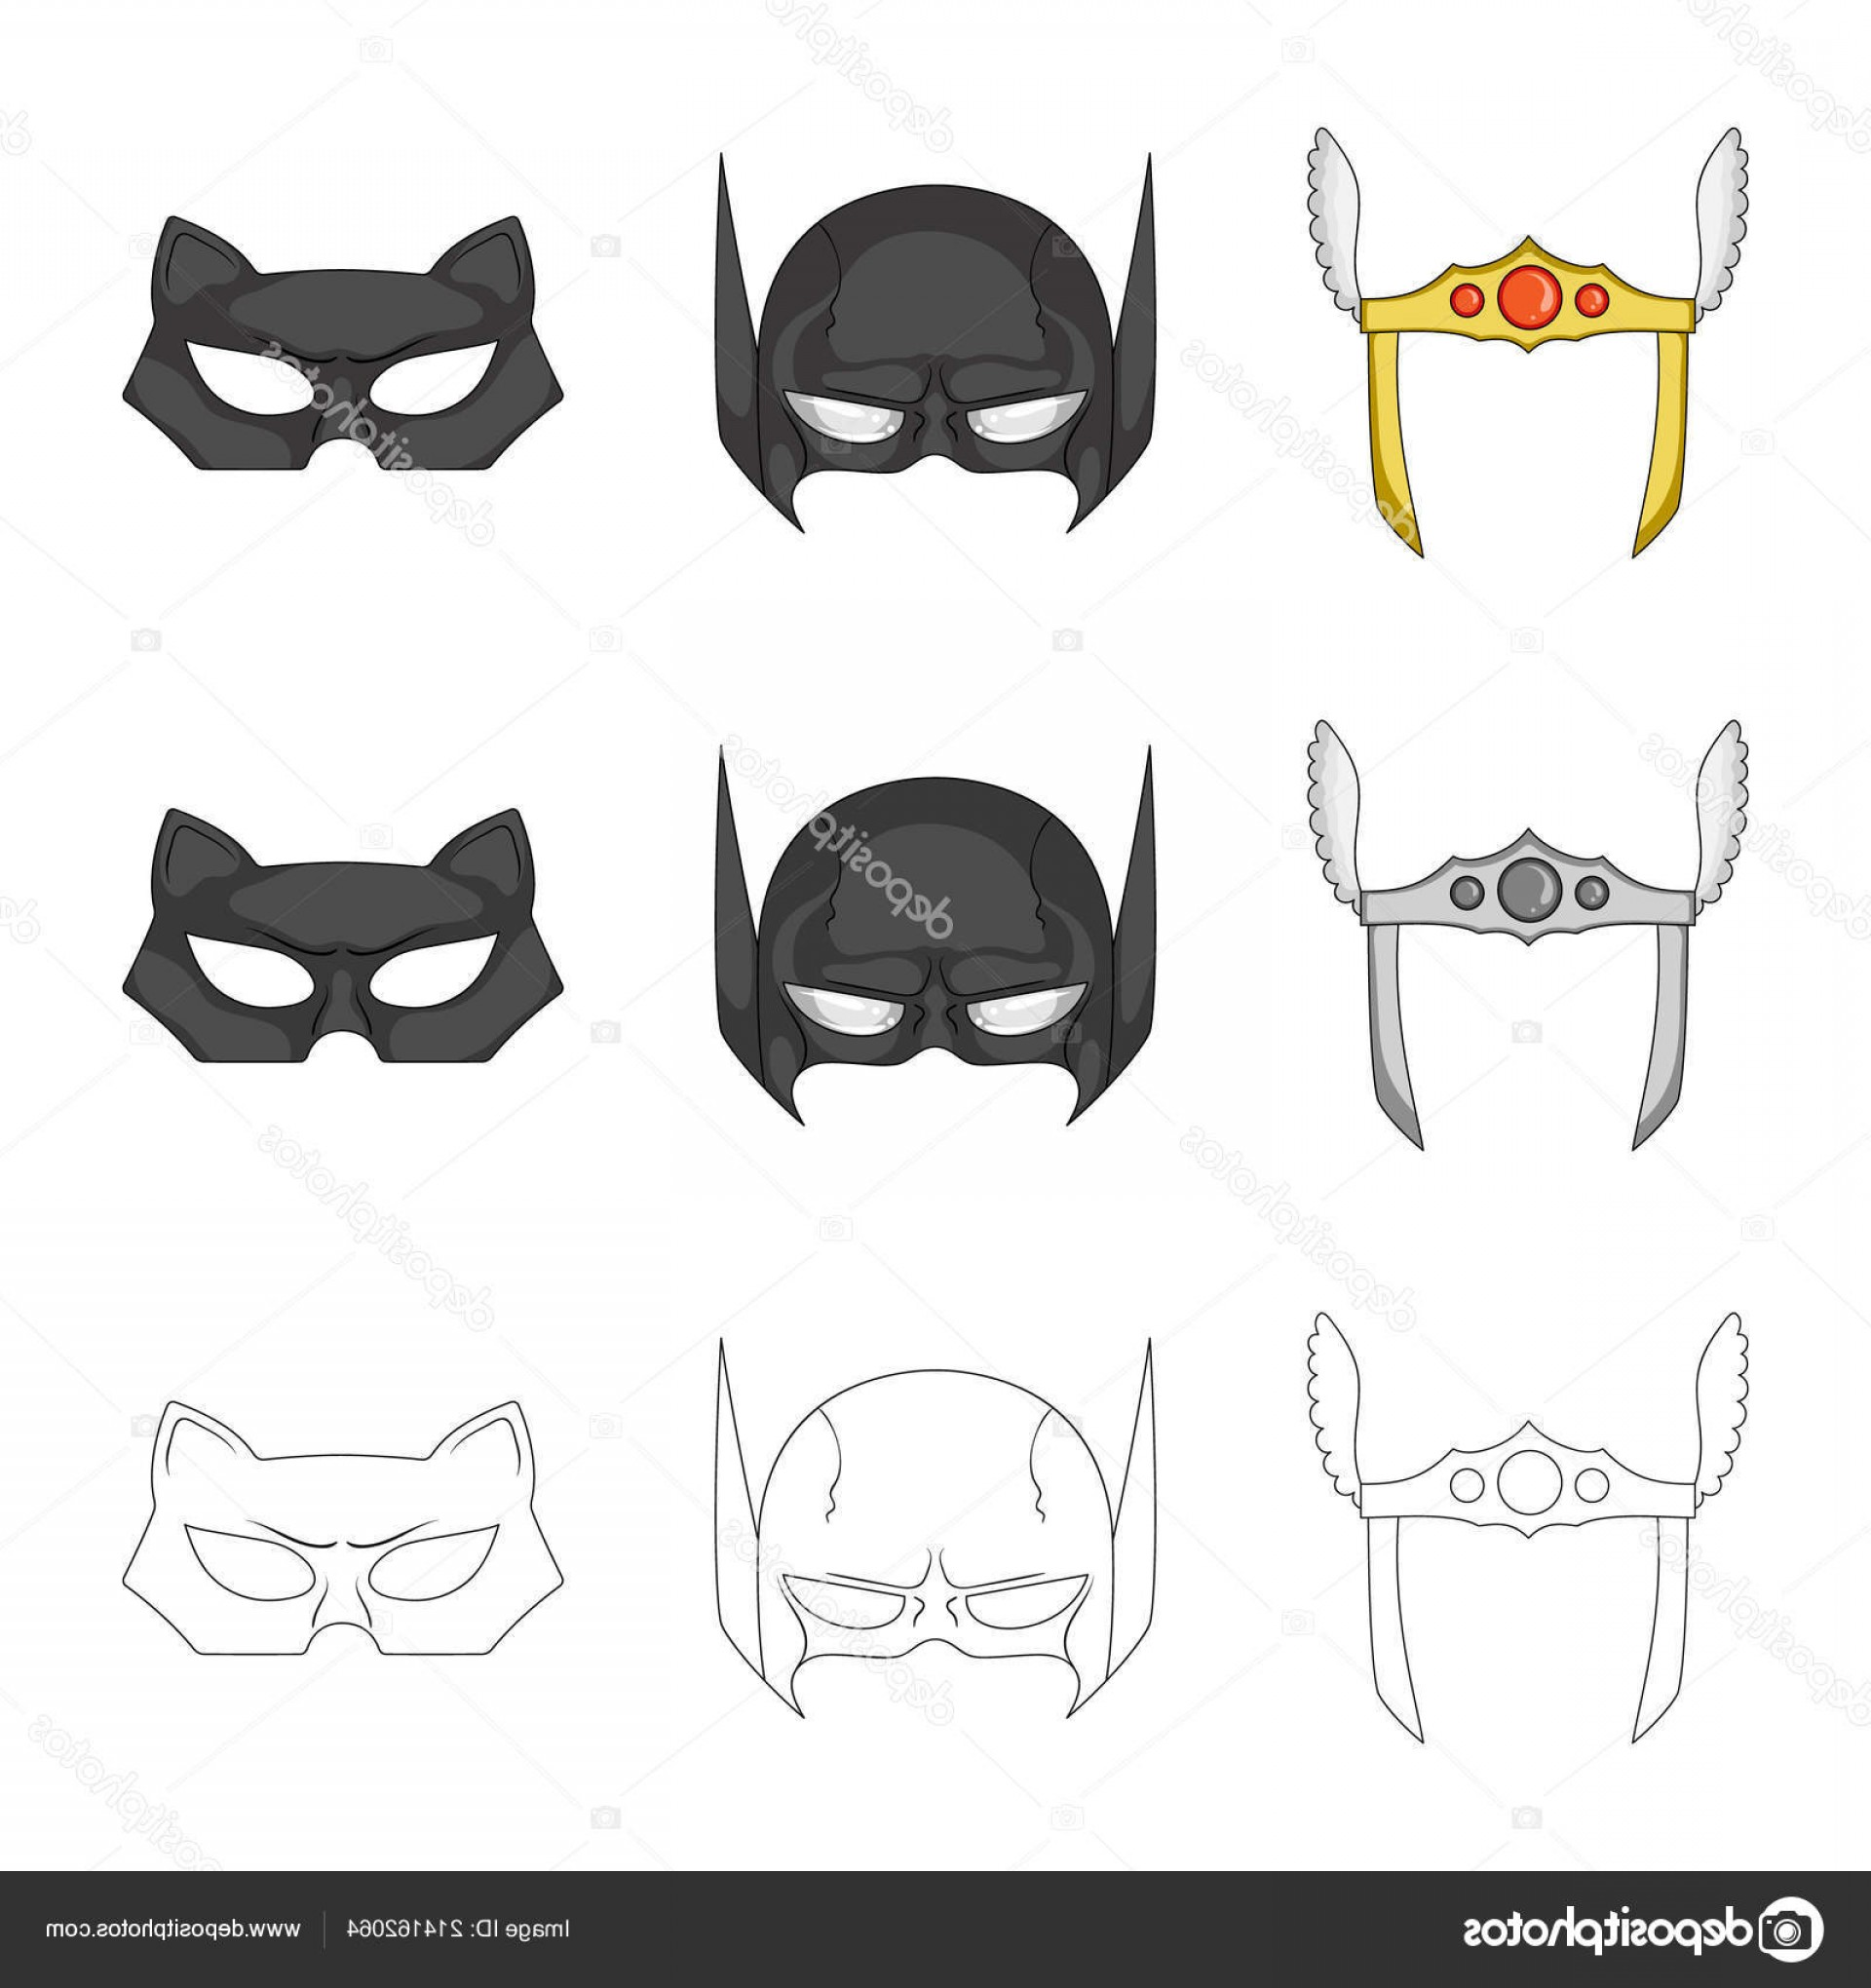 Batman Mask Sketch Vector: Stock Illustration Isolated Object Of Hero And